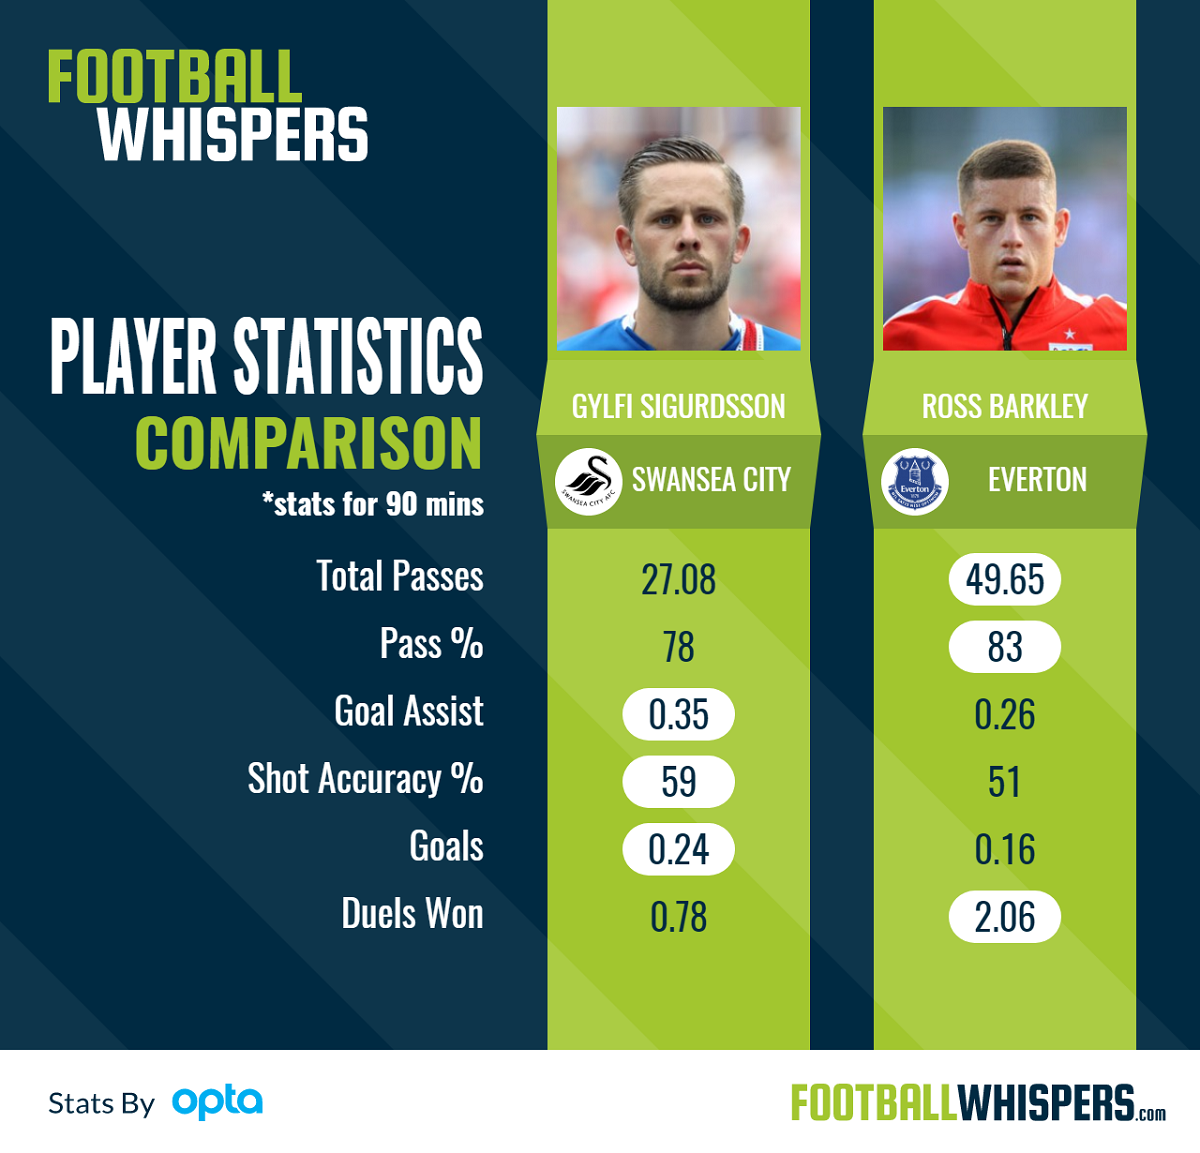 A statistical comparison of Sigurdsson and Barkley.